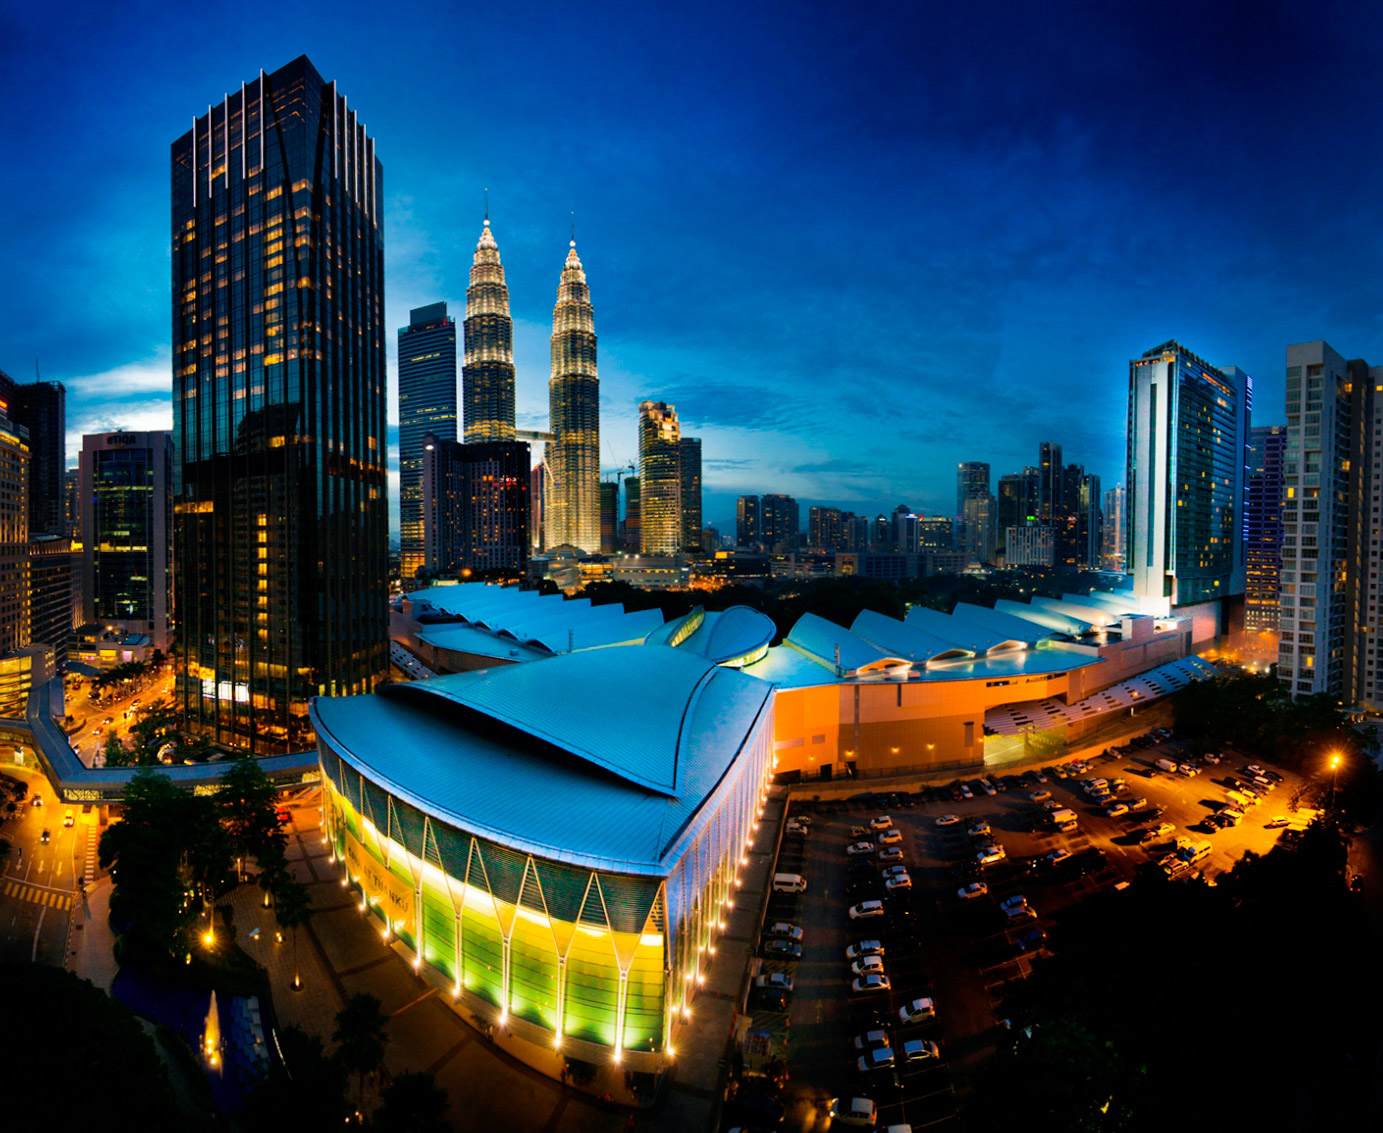 ARCHITECTURE  //  Kuala Lumpur Convention Centre  // KLCC has a Gross Floor Area of 120,000 m2, comprising 9,710 m2 of exhibition space, a grand ballroom, conference hall, a banquet hall, a plenary hall for 3,000 seats and 20 meeting rooms.This MICE facility is globally benchmarked and is today one of the most sought-after venues in Southeast Asia.  Neuformation Architects Sdn Bhd